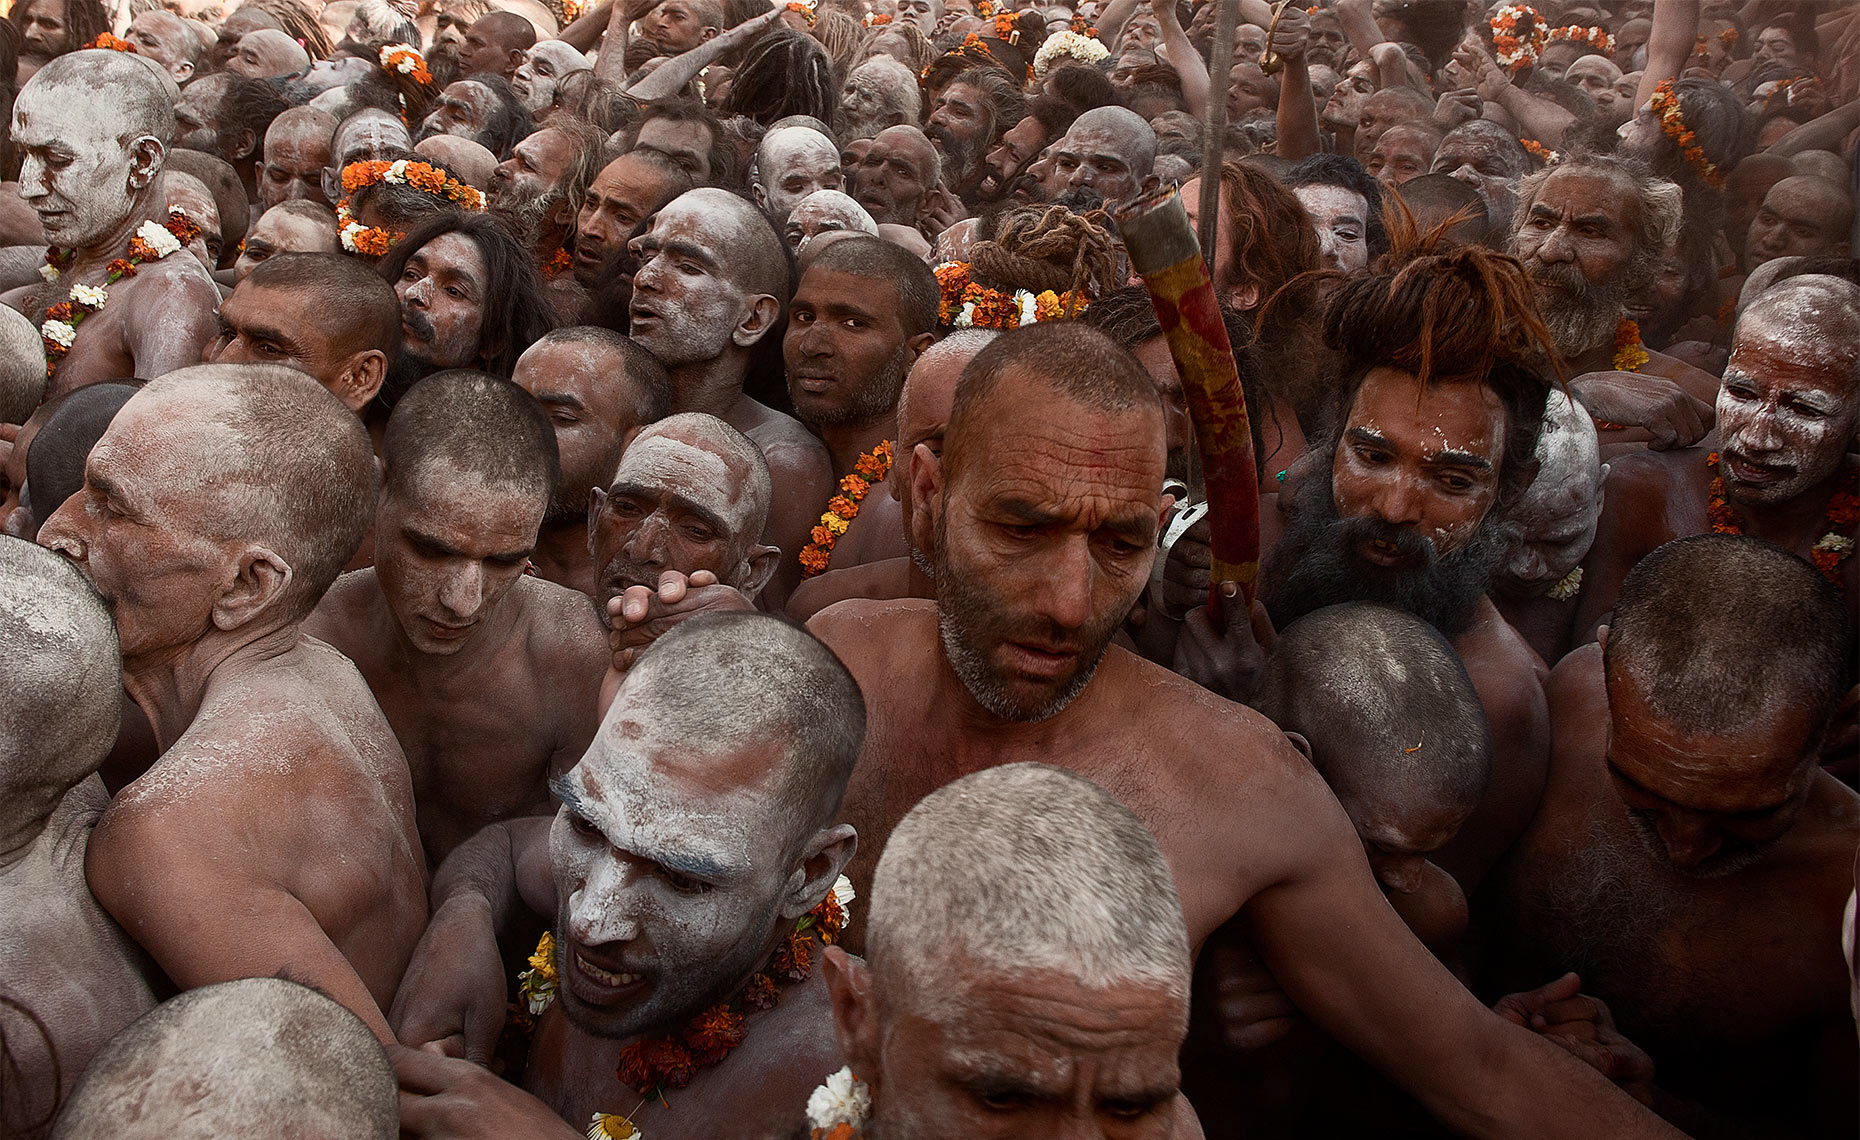 naked naga shadus at haridwar kumbh mela India